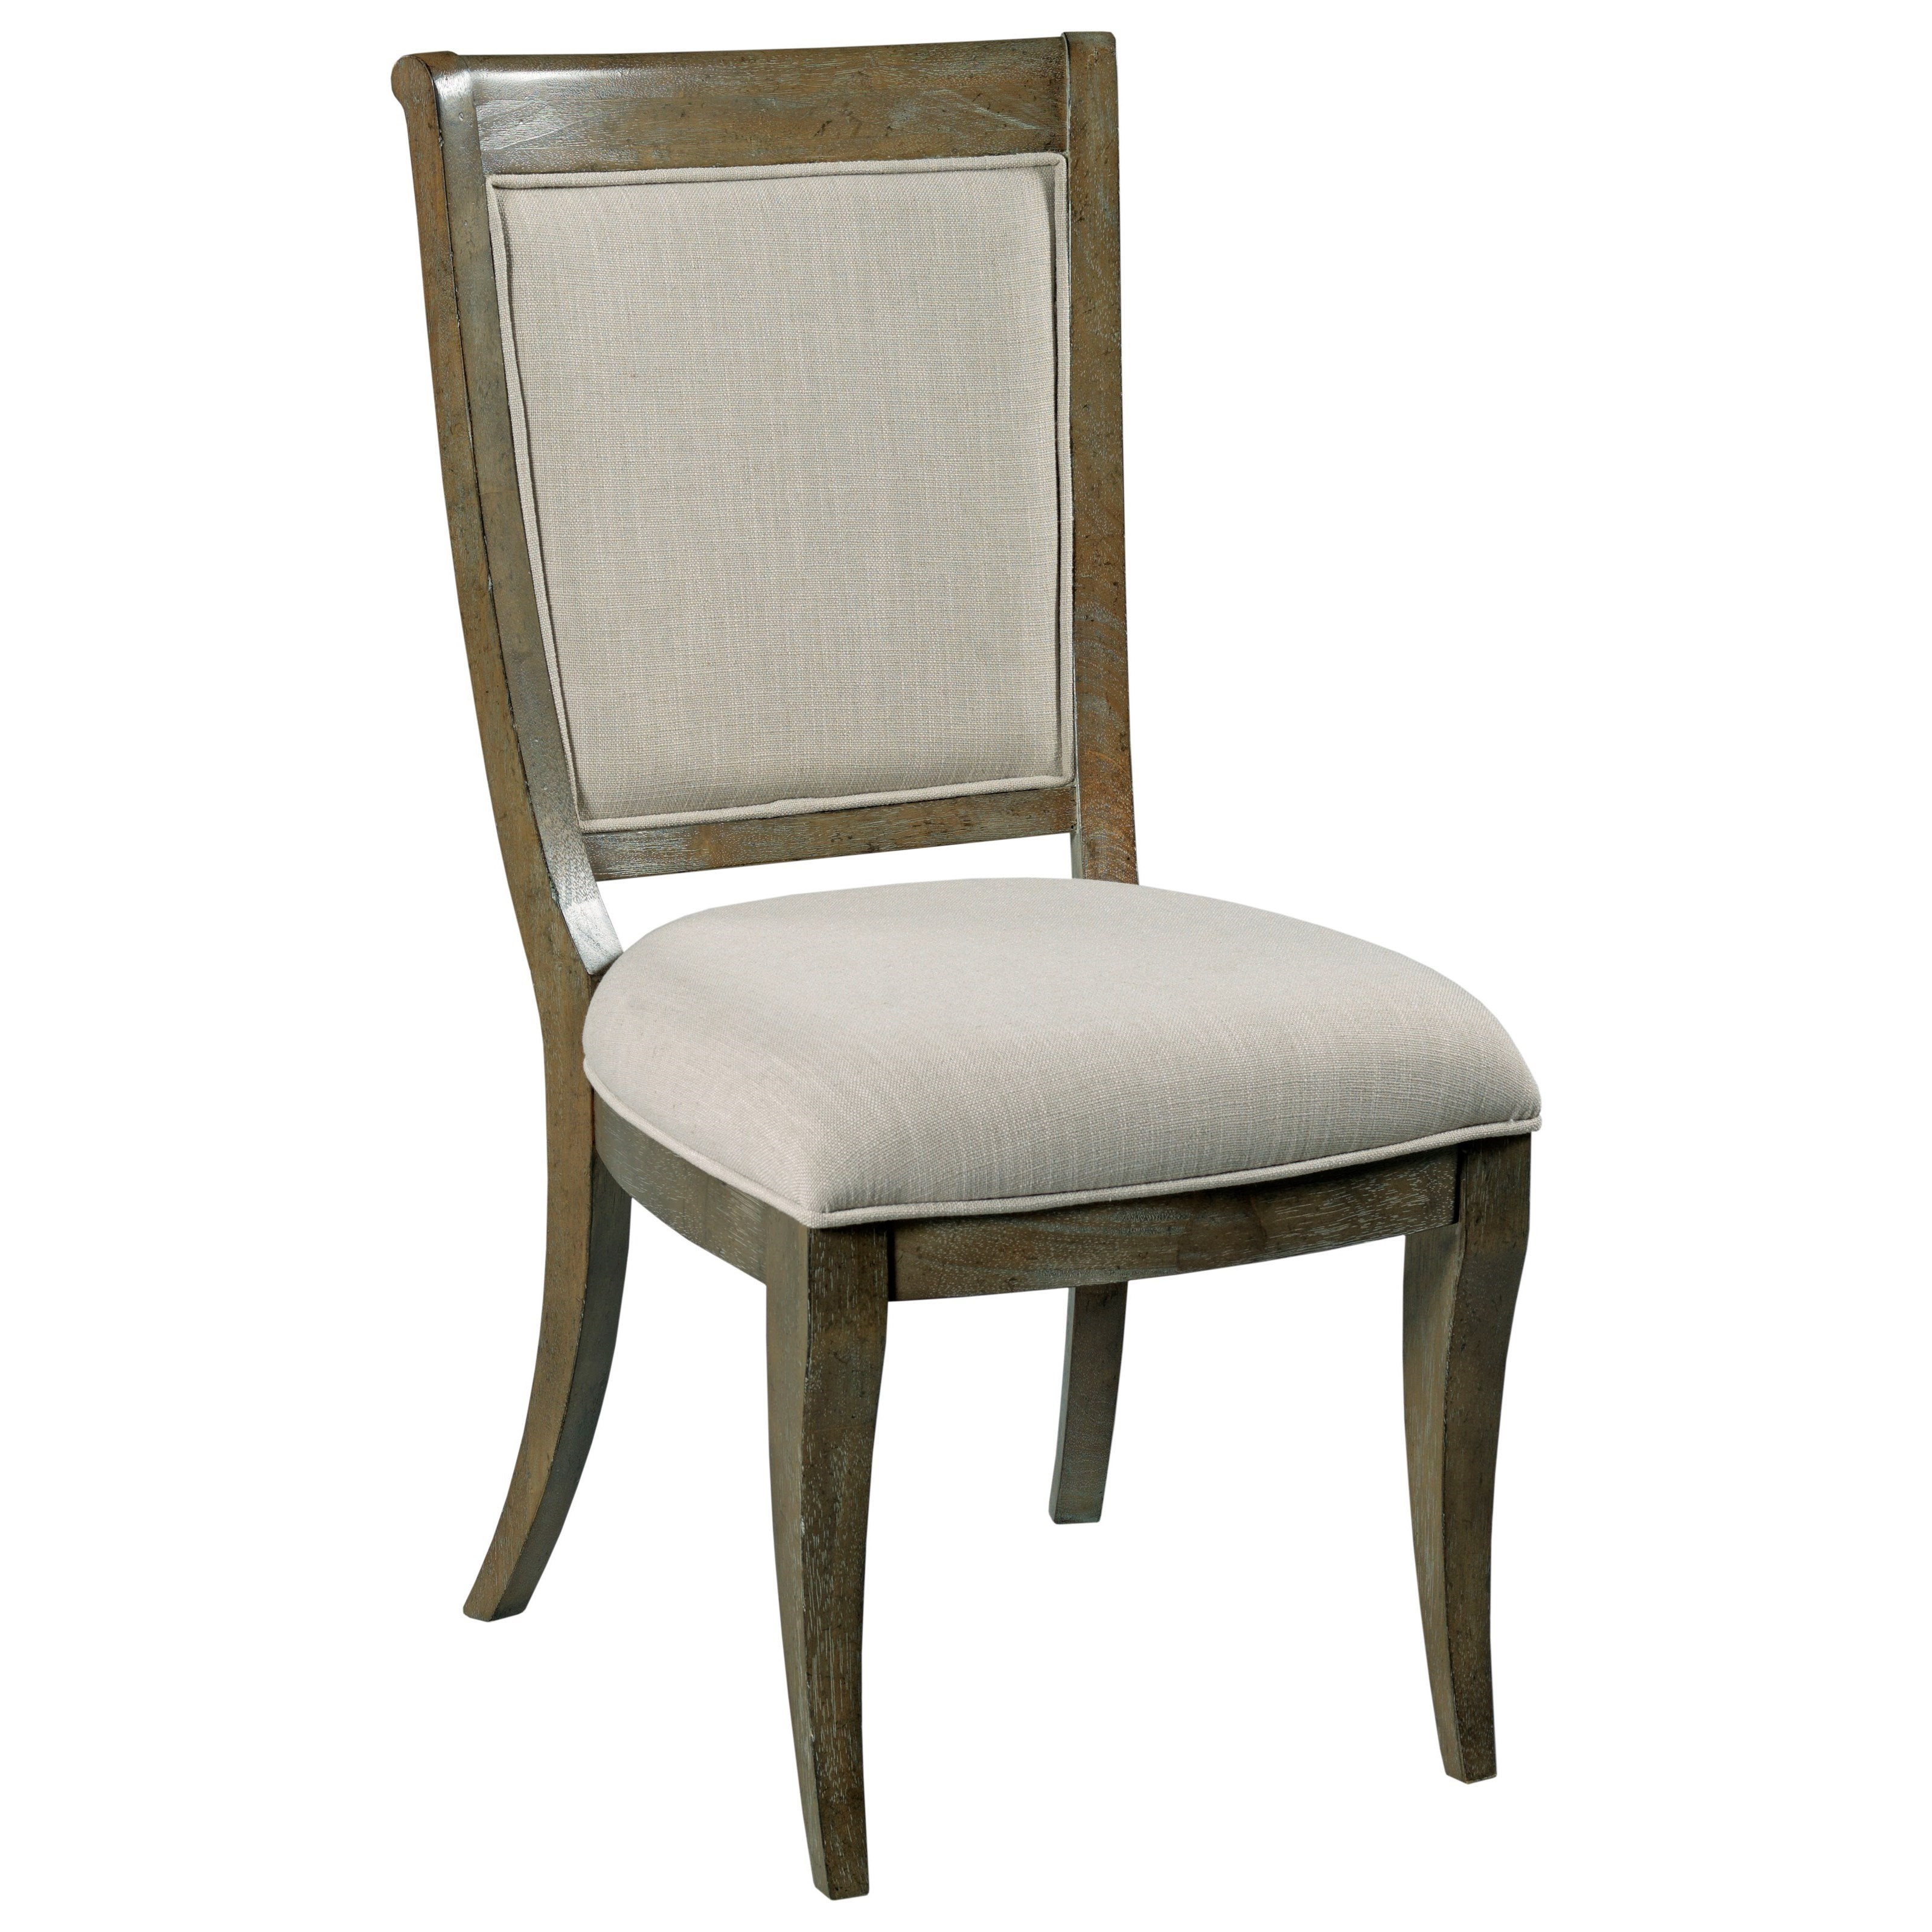 Anson Side Chair by American Drew at Alison Craig Home Furnishings